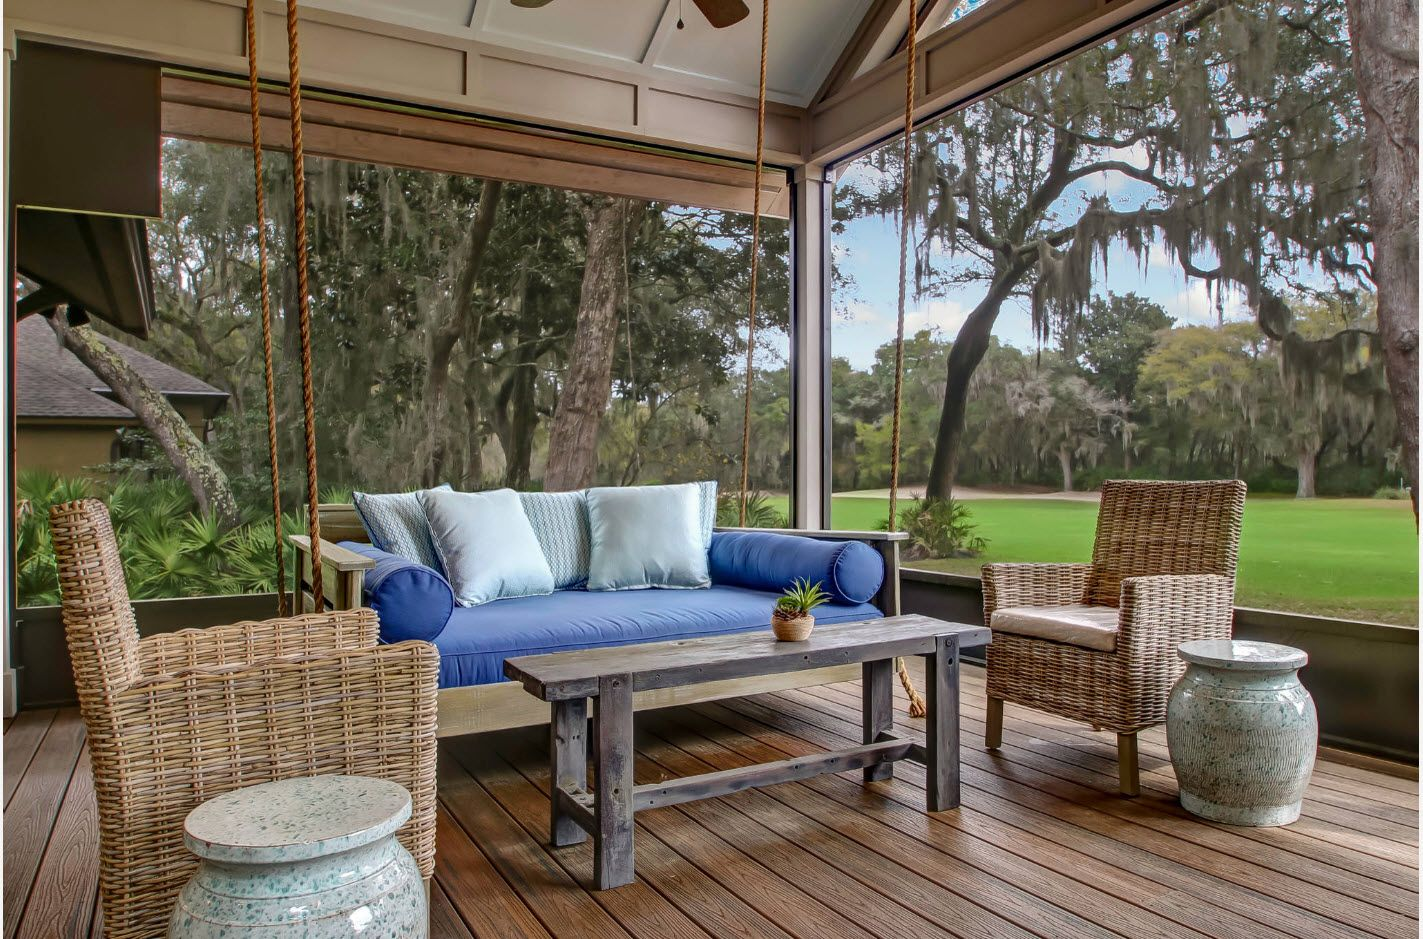 Open design of the porch area at the tropic zone located house